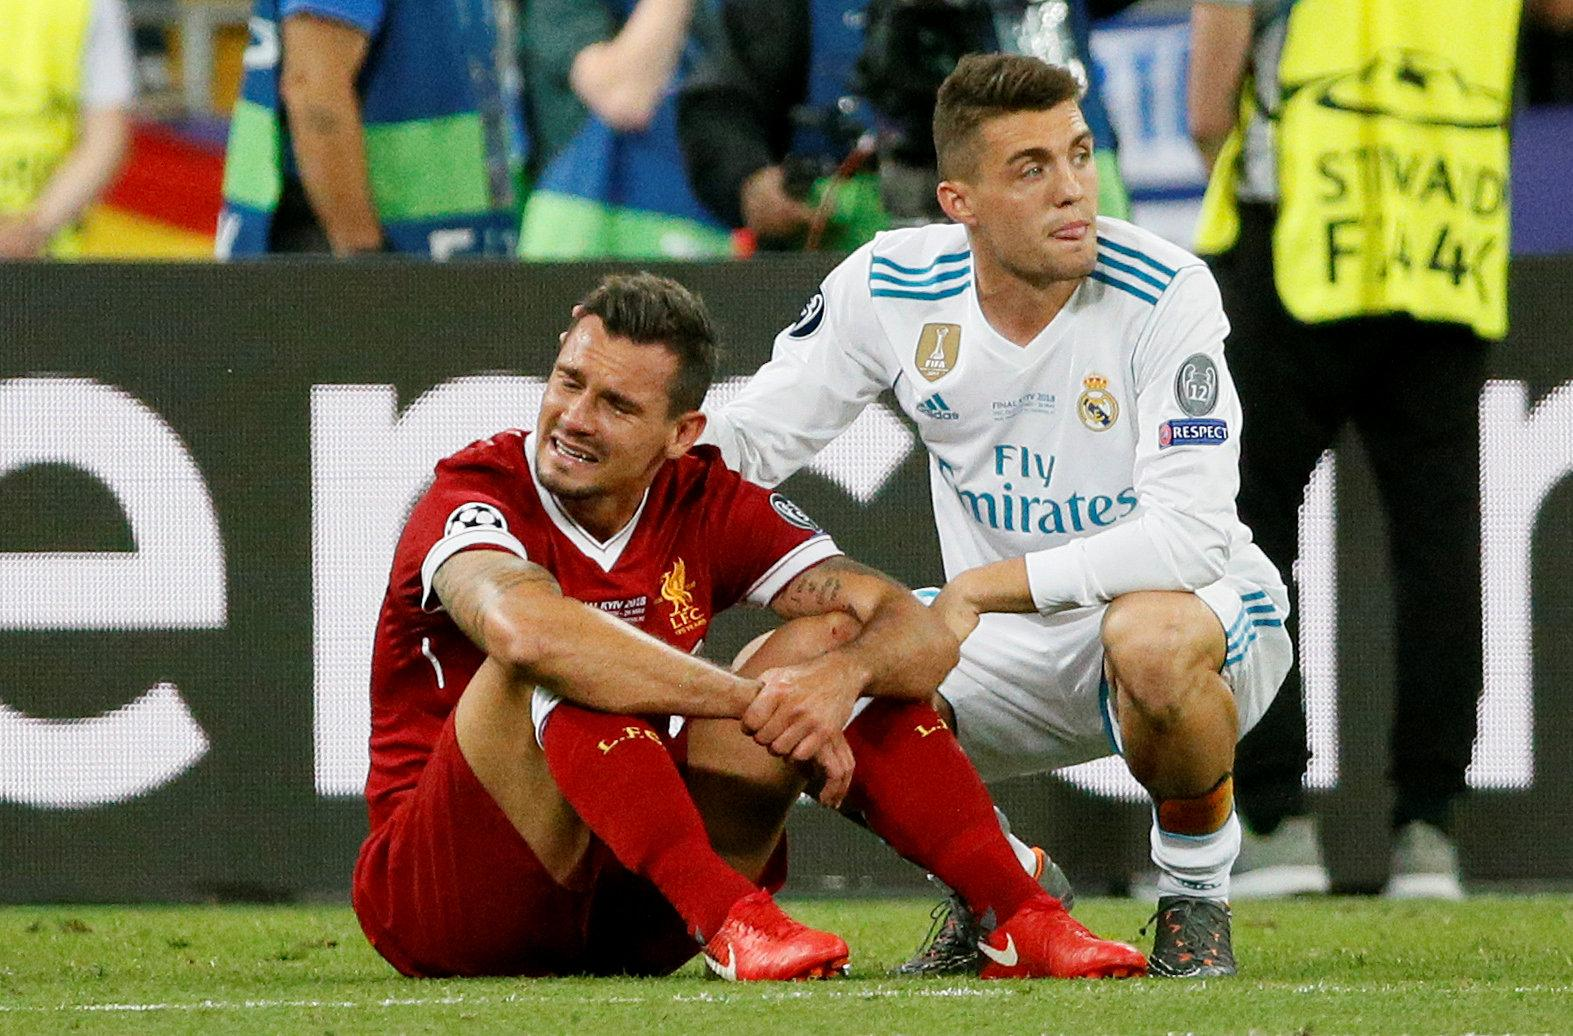 Not even a Prem player yet and he's already made Dejan Lovren cry